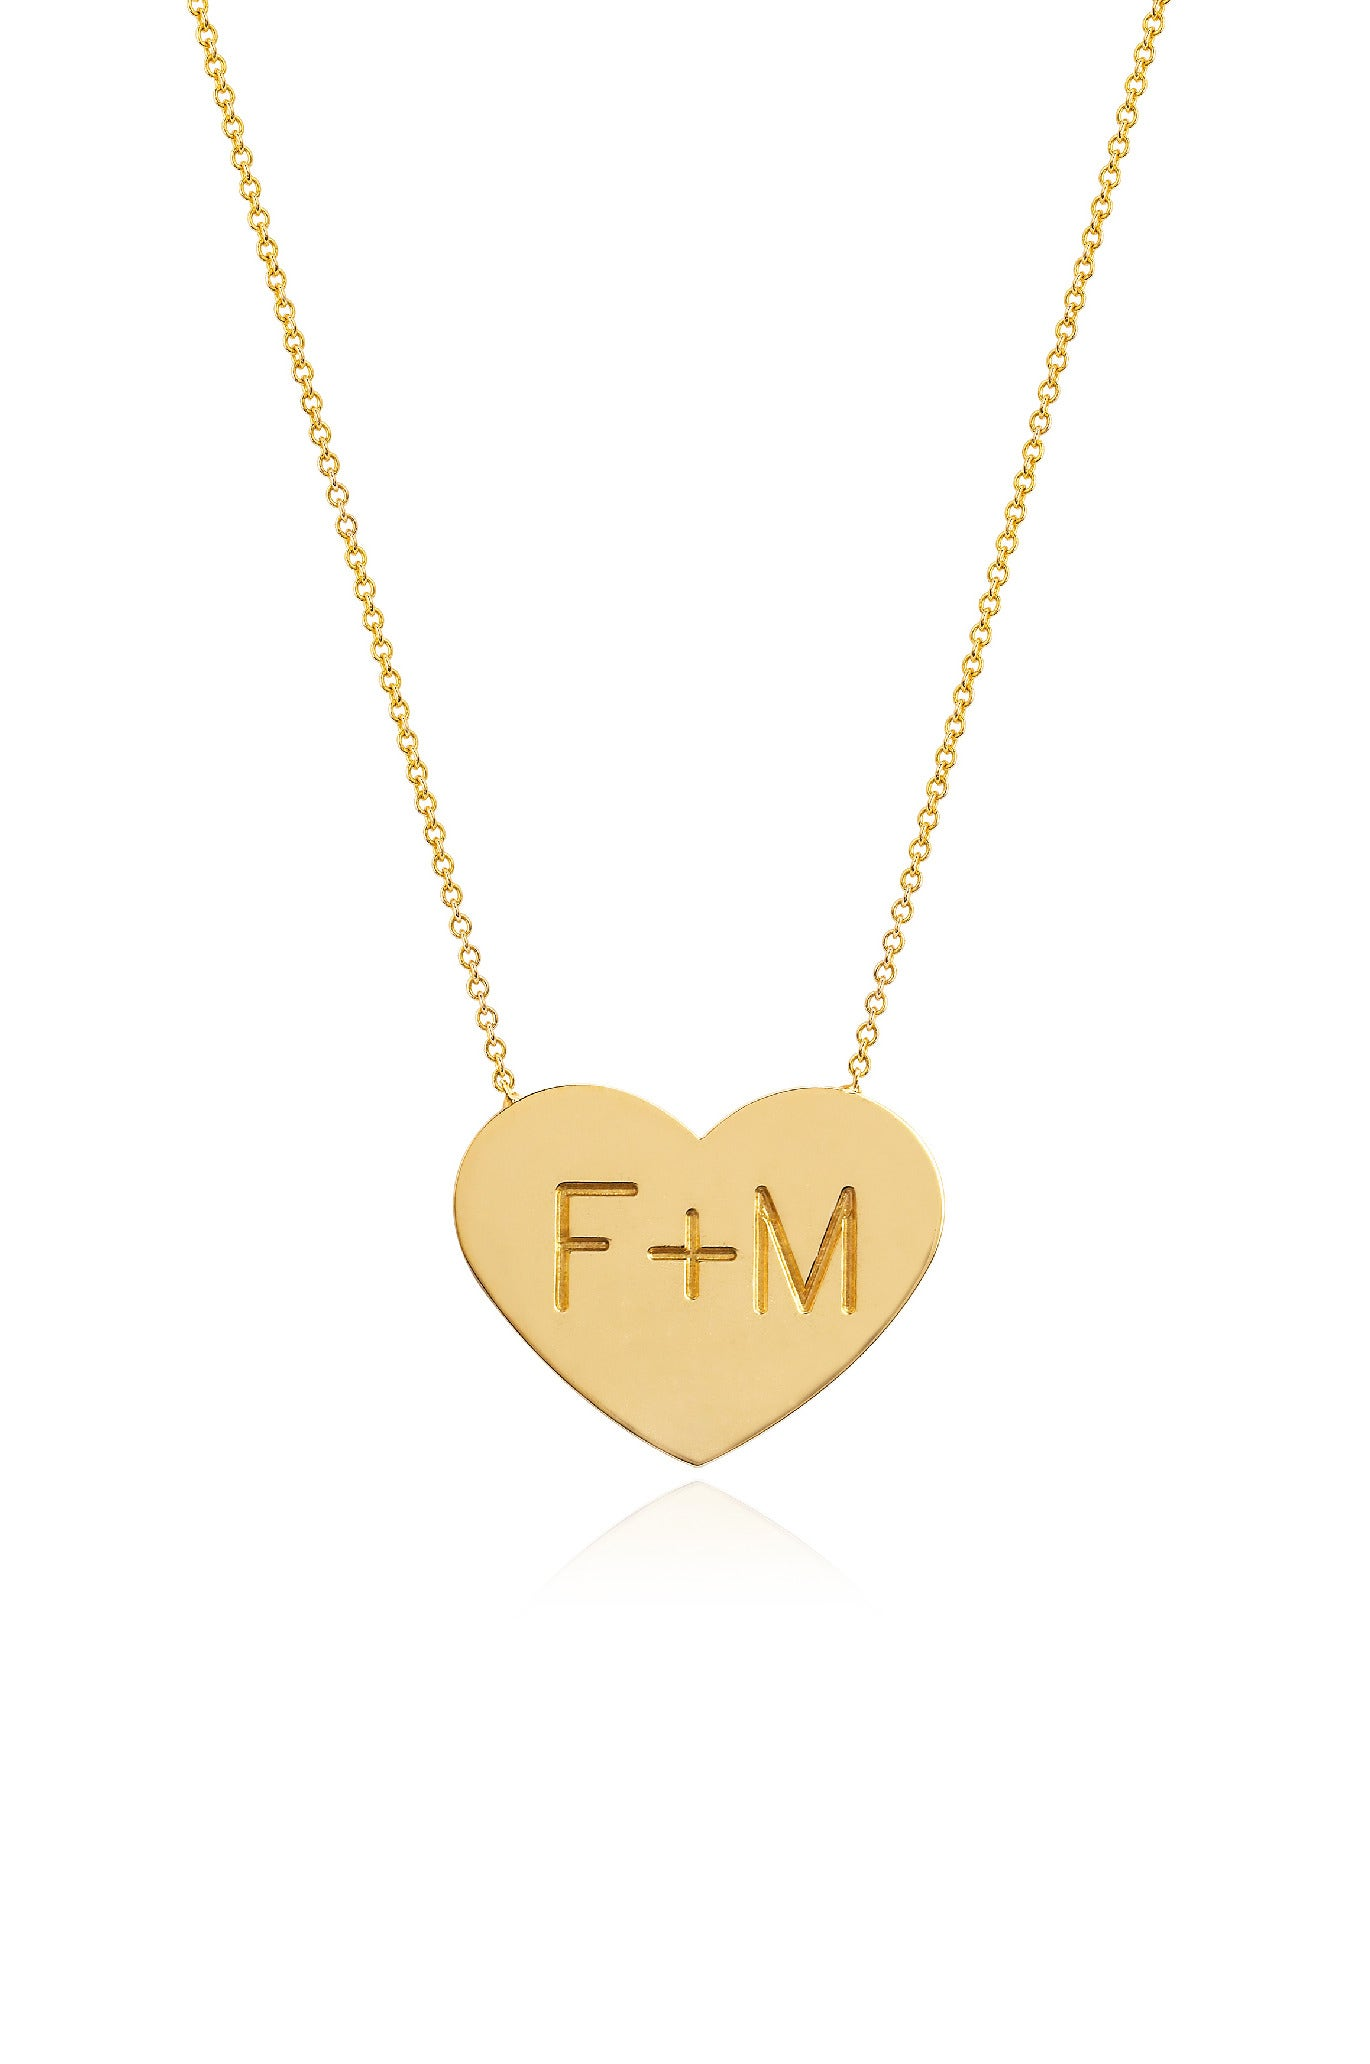 14K GOLD CUSTOM SMALL HEART OF GOLD NECKLACE